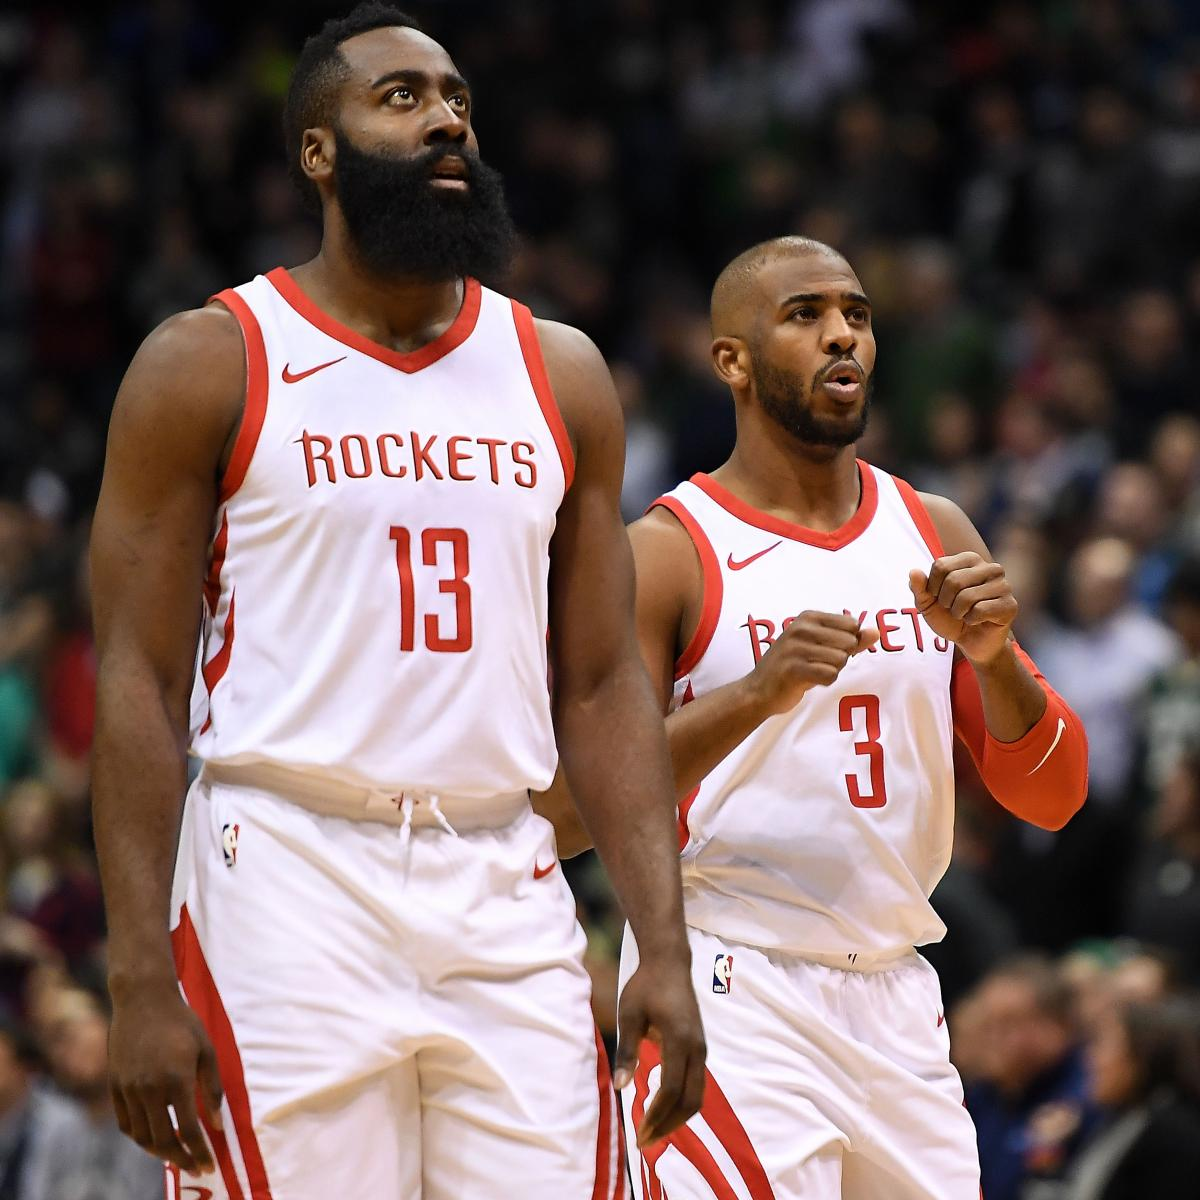 Rockets All Time Roster: Can You Be A Superteam With Two Stars? Houston Rockets